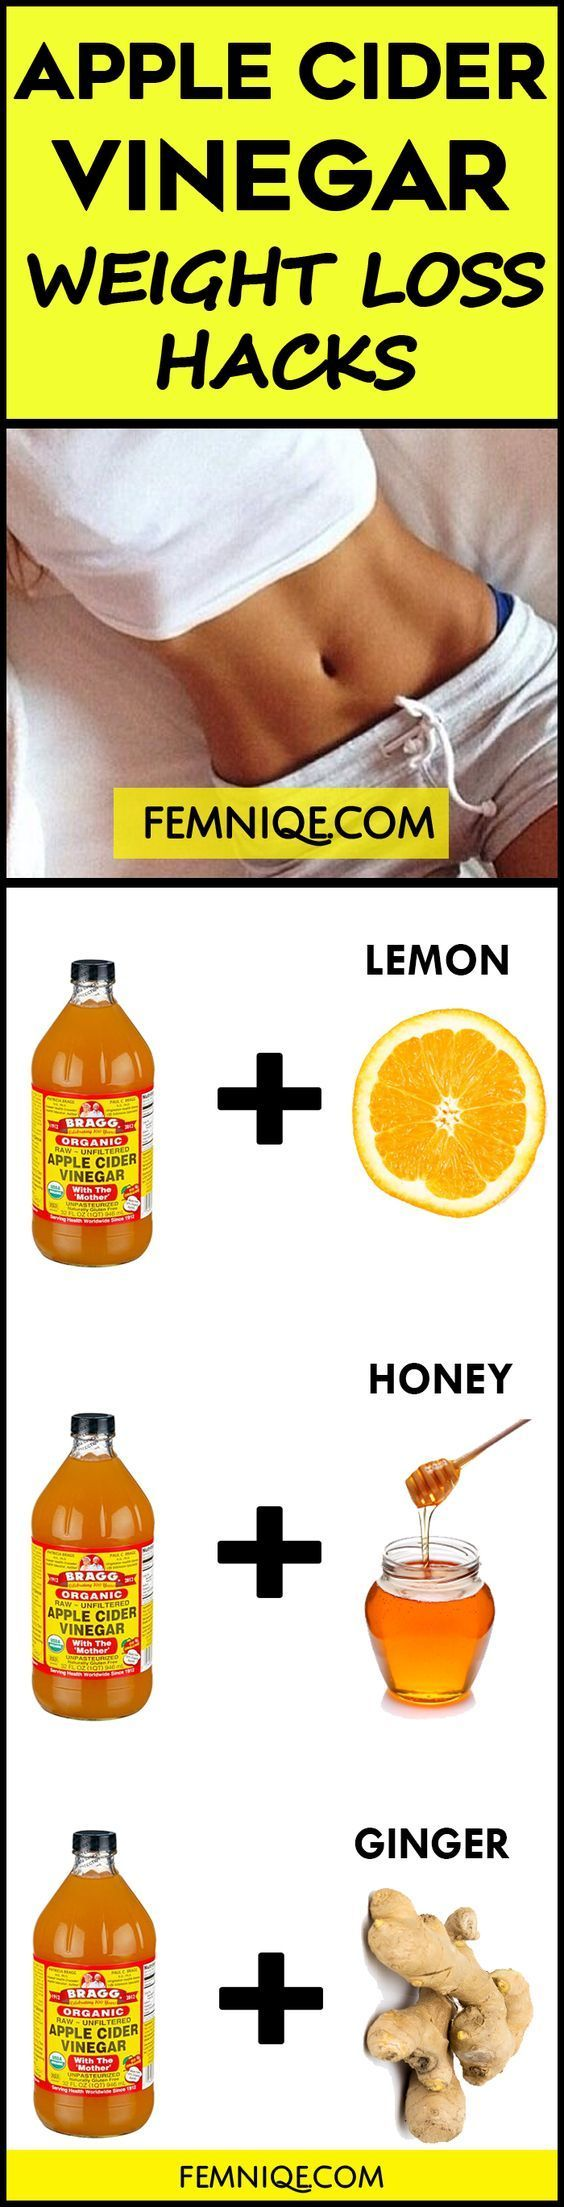 apple cider vinegar weight loss recipe